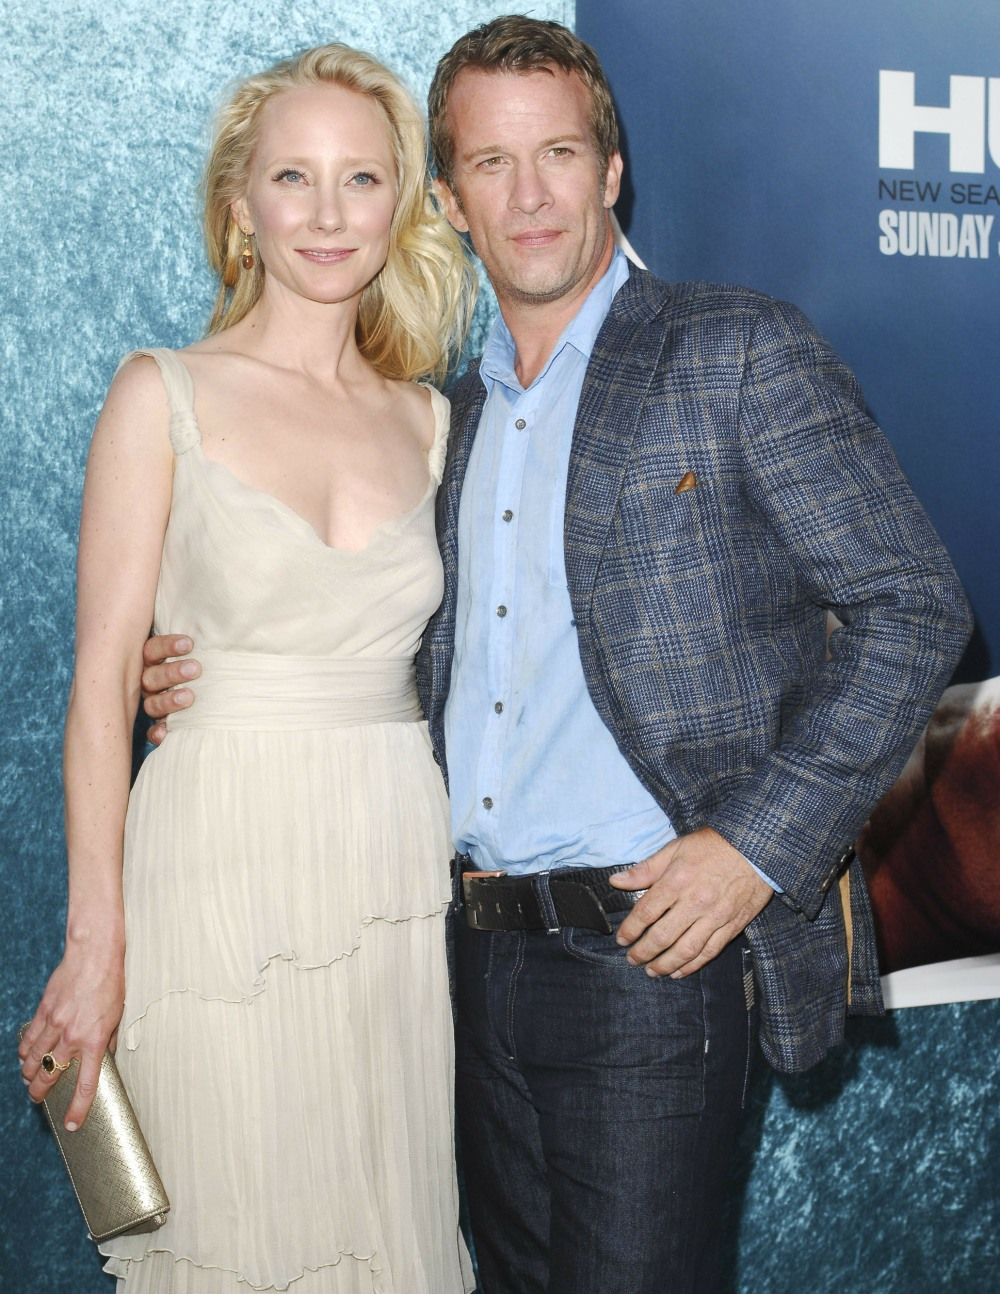 Now who is dating anne heche Is Anne